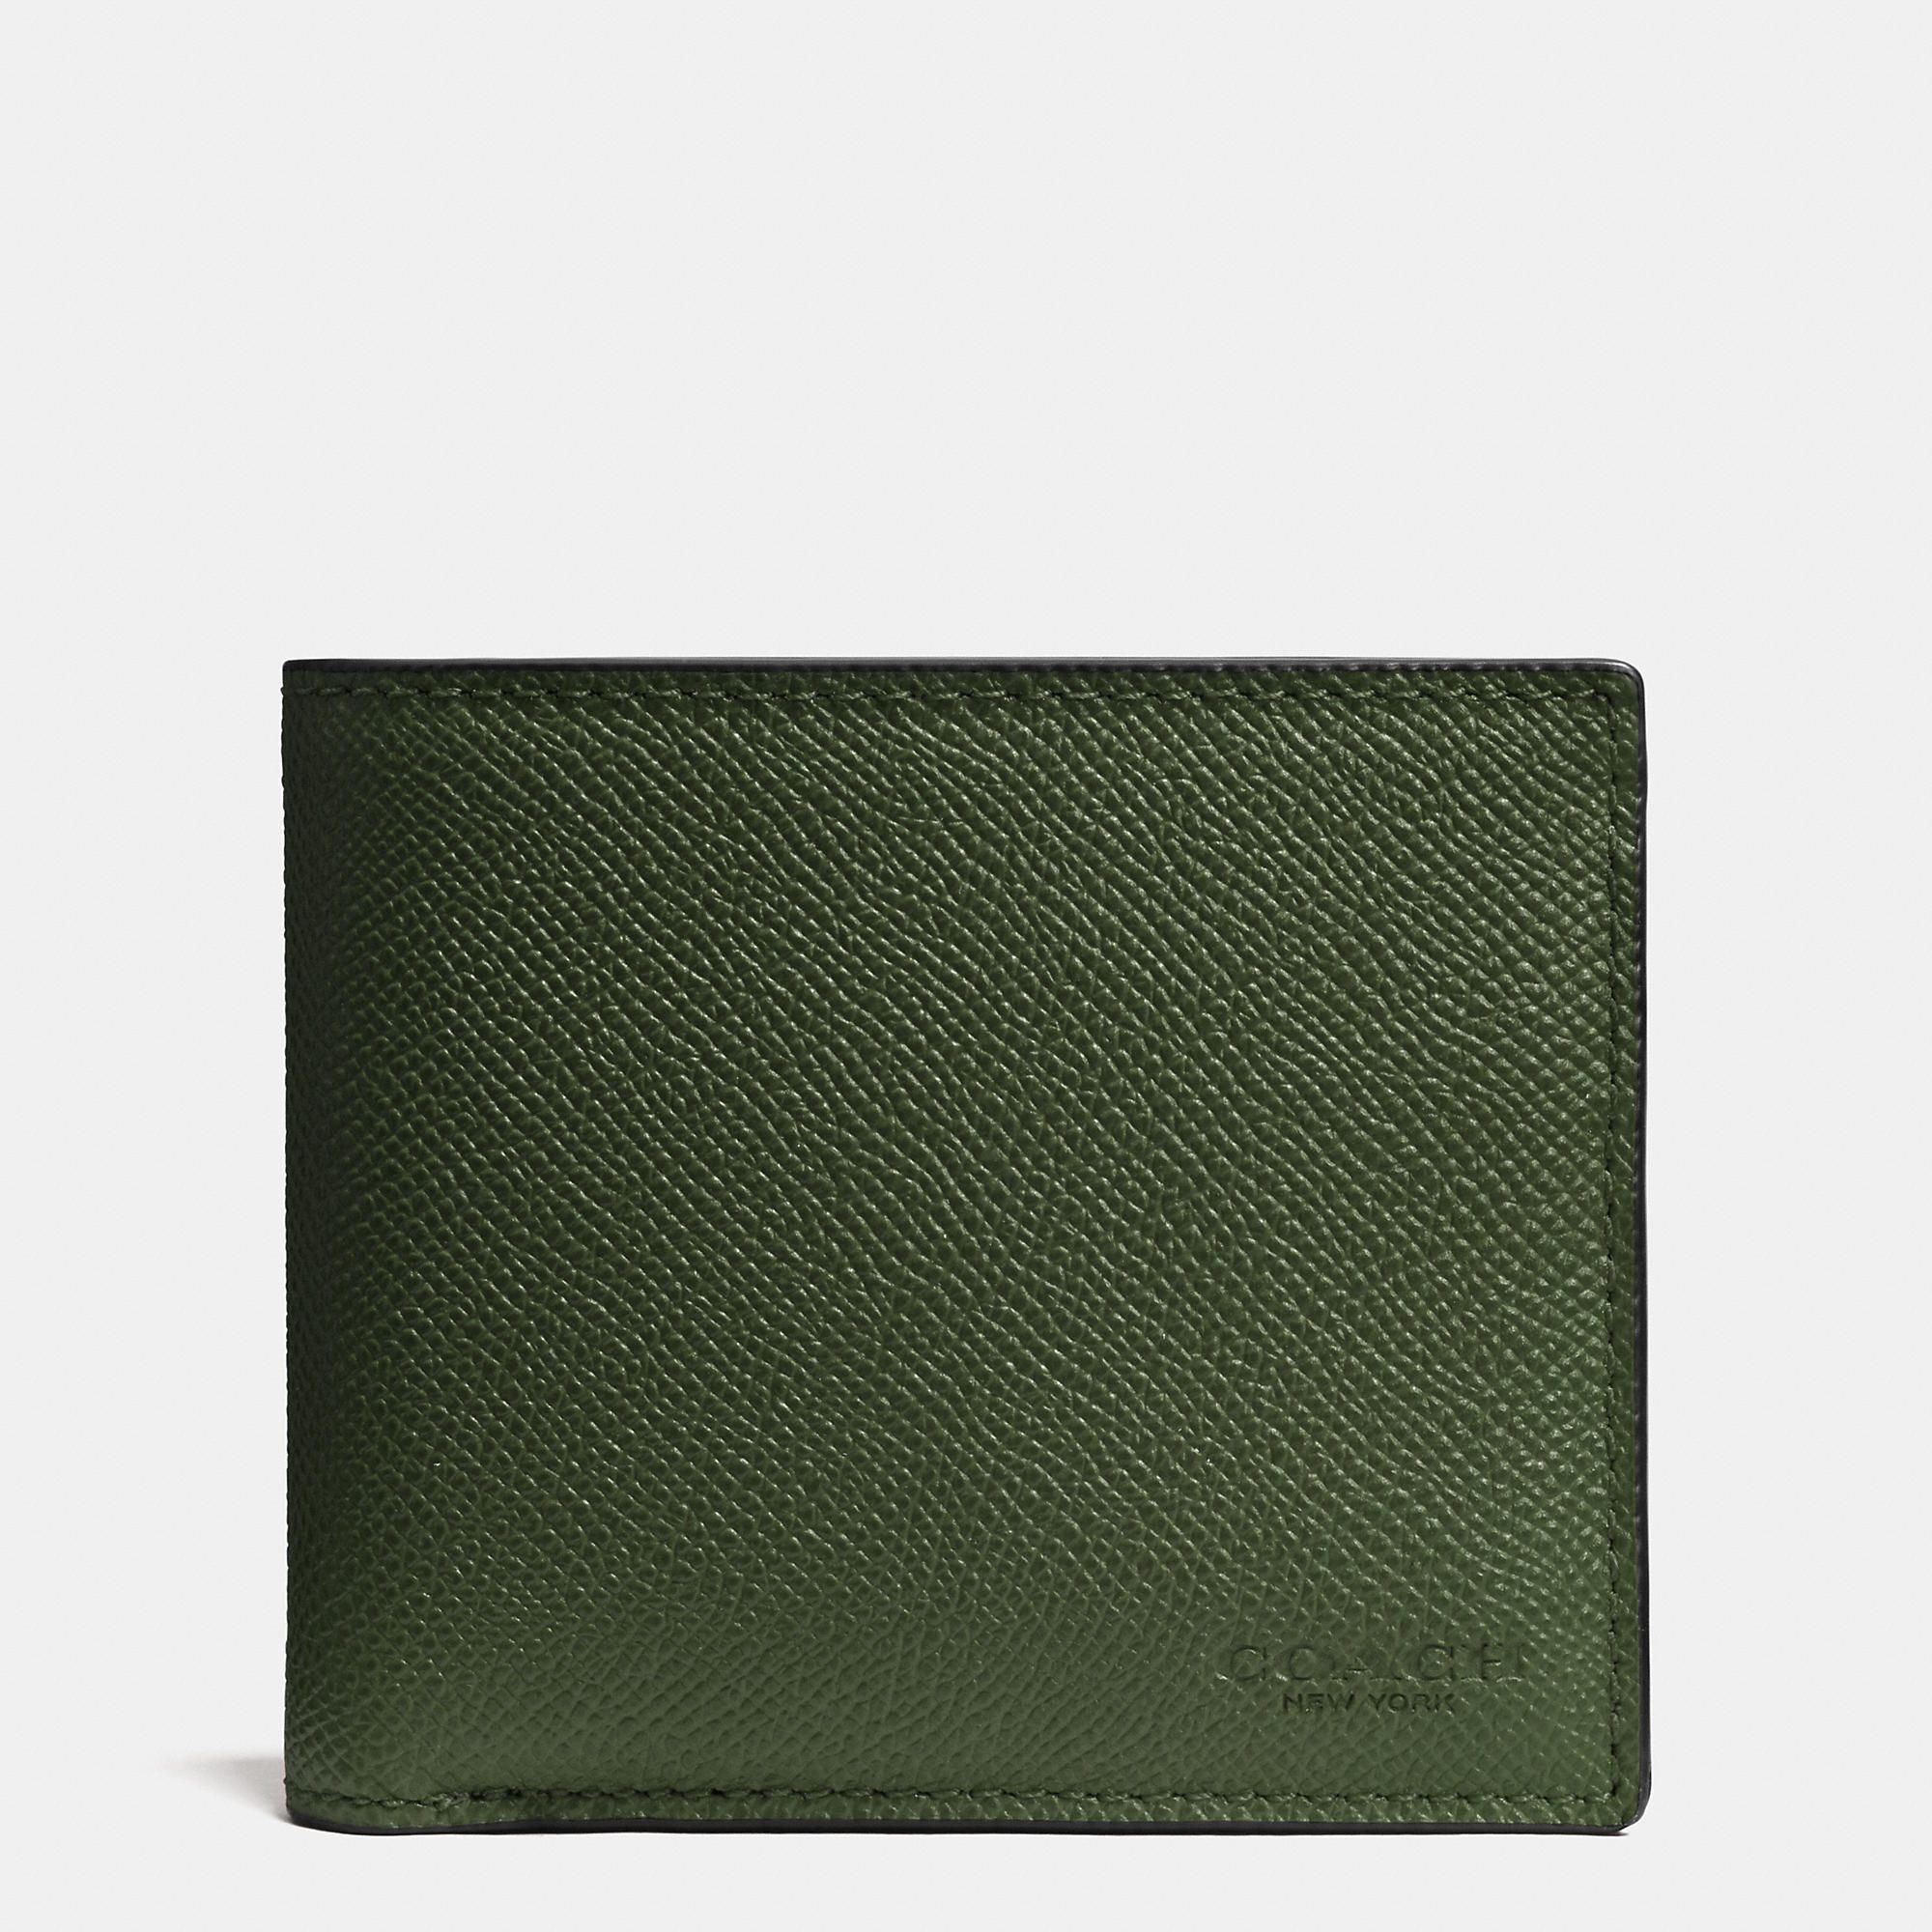 COACH Mens Wallets | Compact Id Wallet In Crossgrain Leather ...